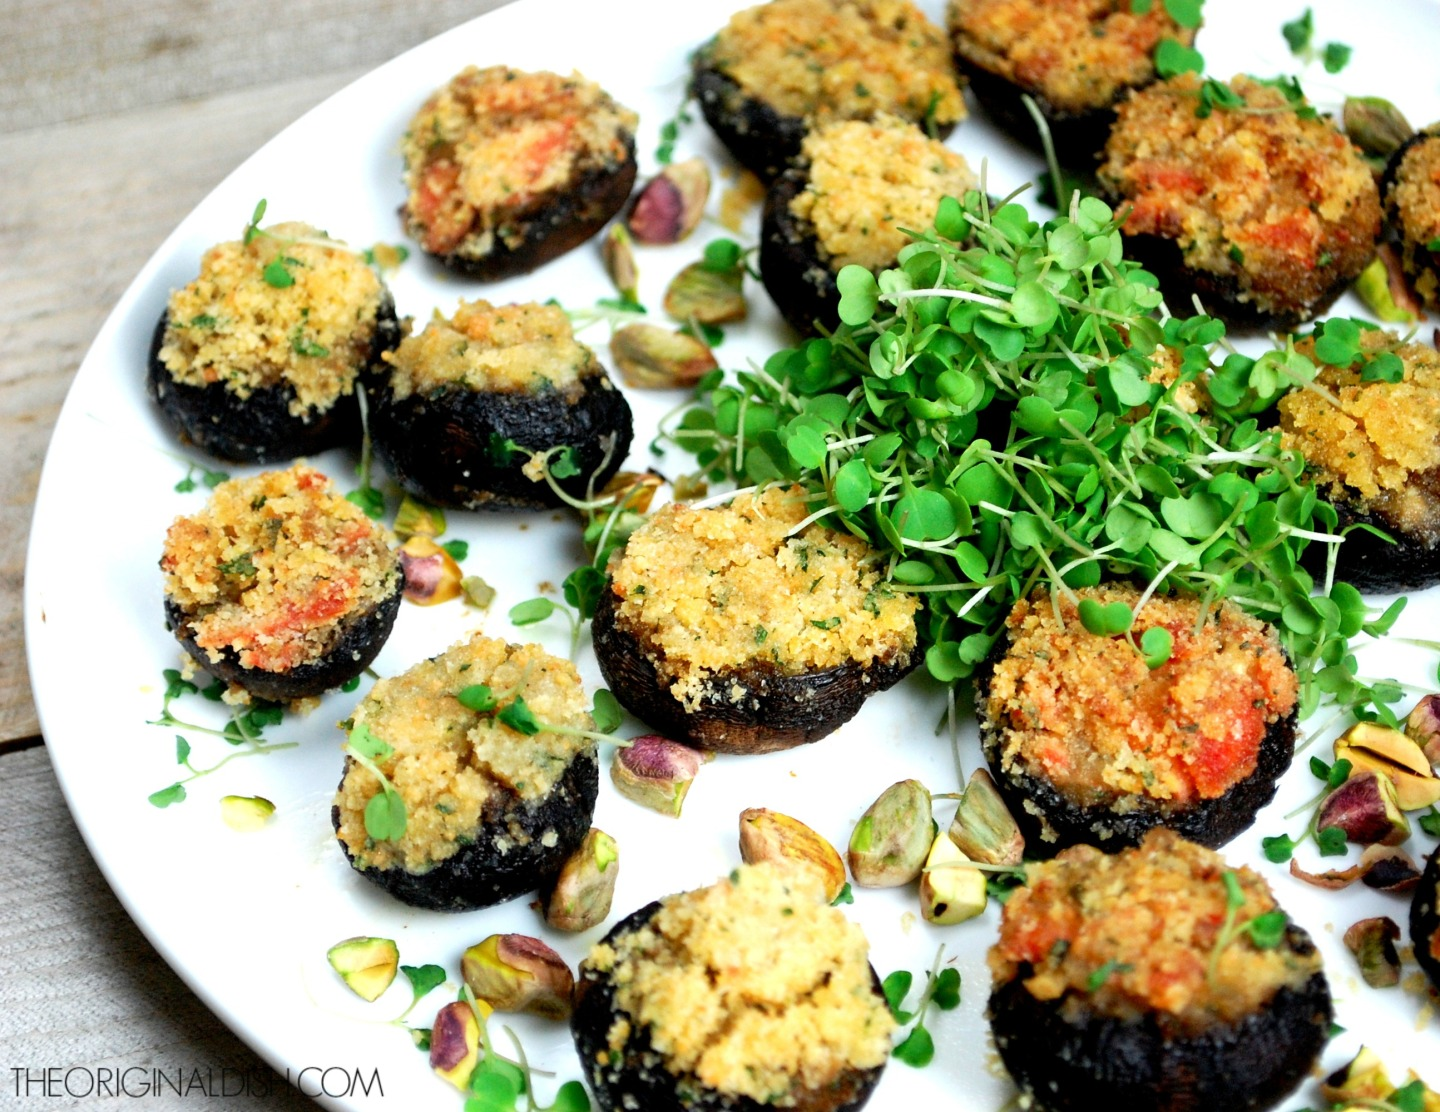 Crab & Salmon Stuffed Mushrooms with a Trio of DippingSauces